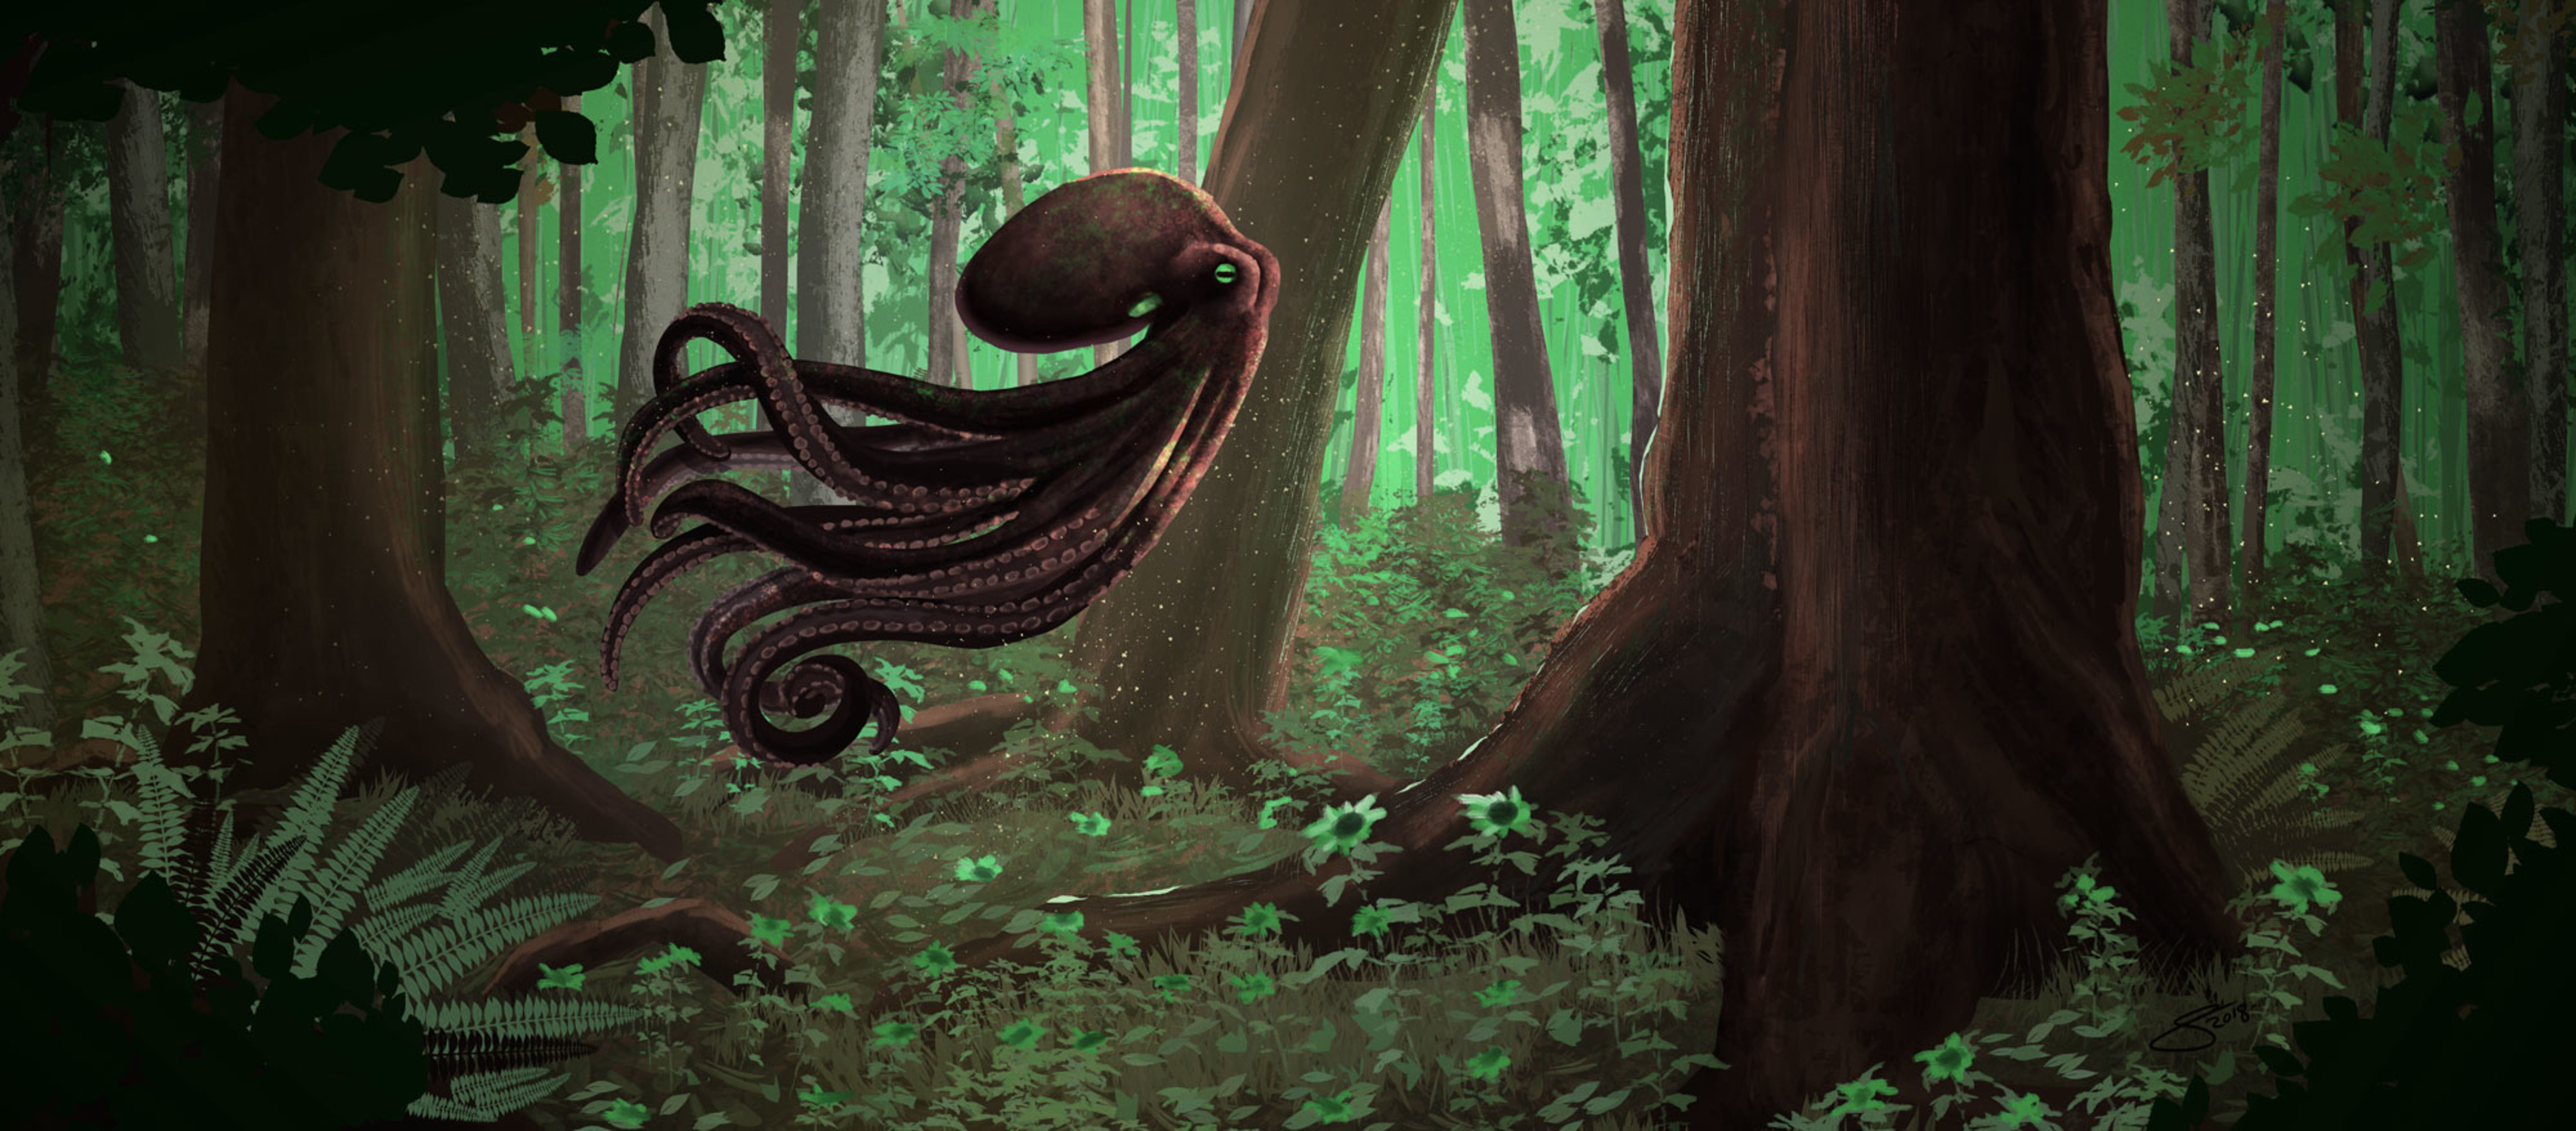 The Forest Octopoid Artwork by Eric Summers